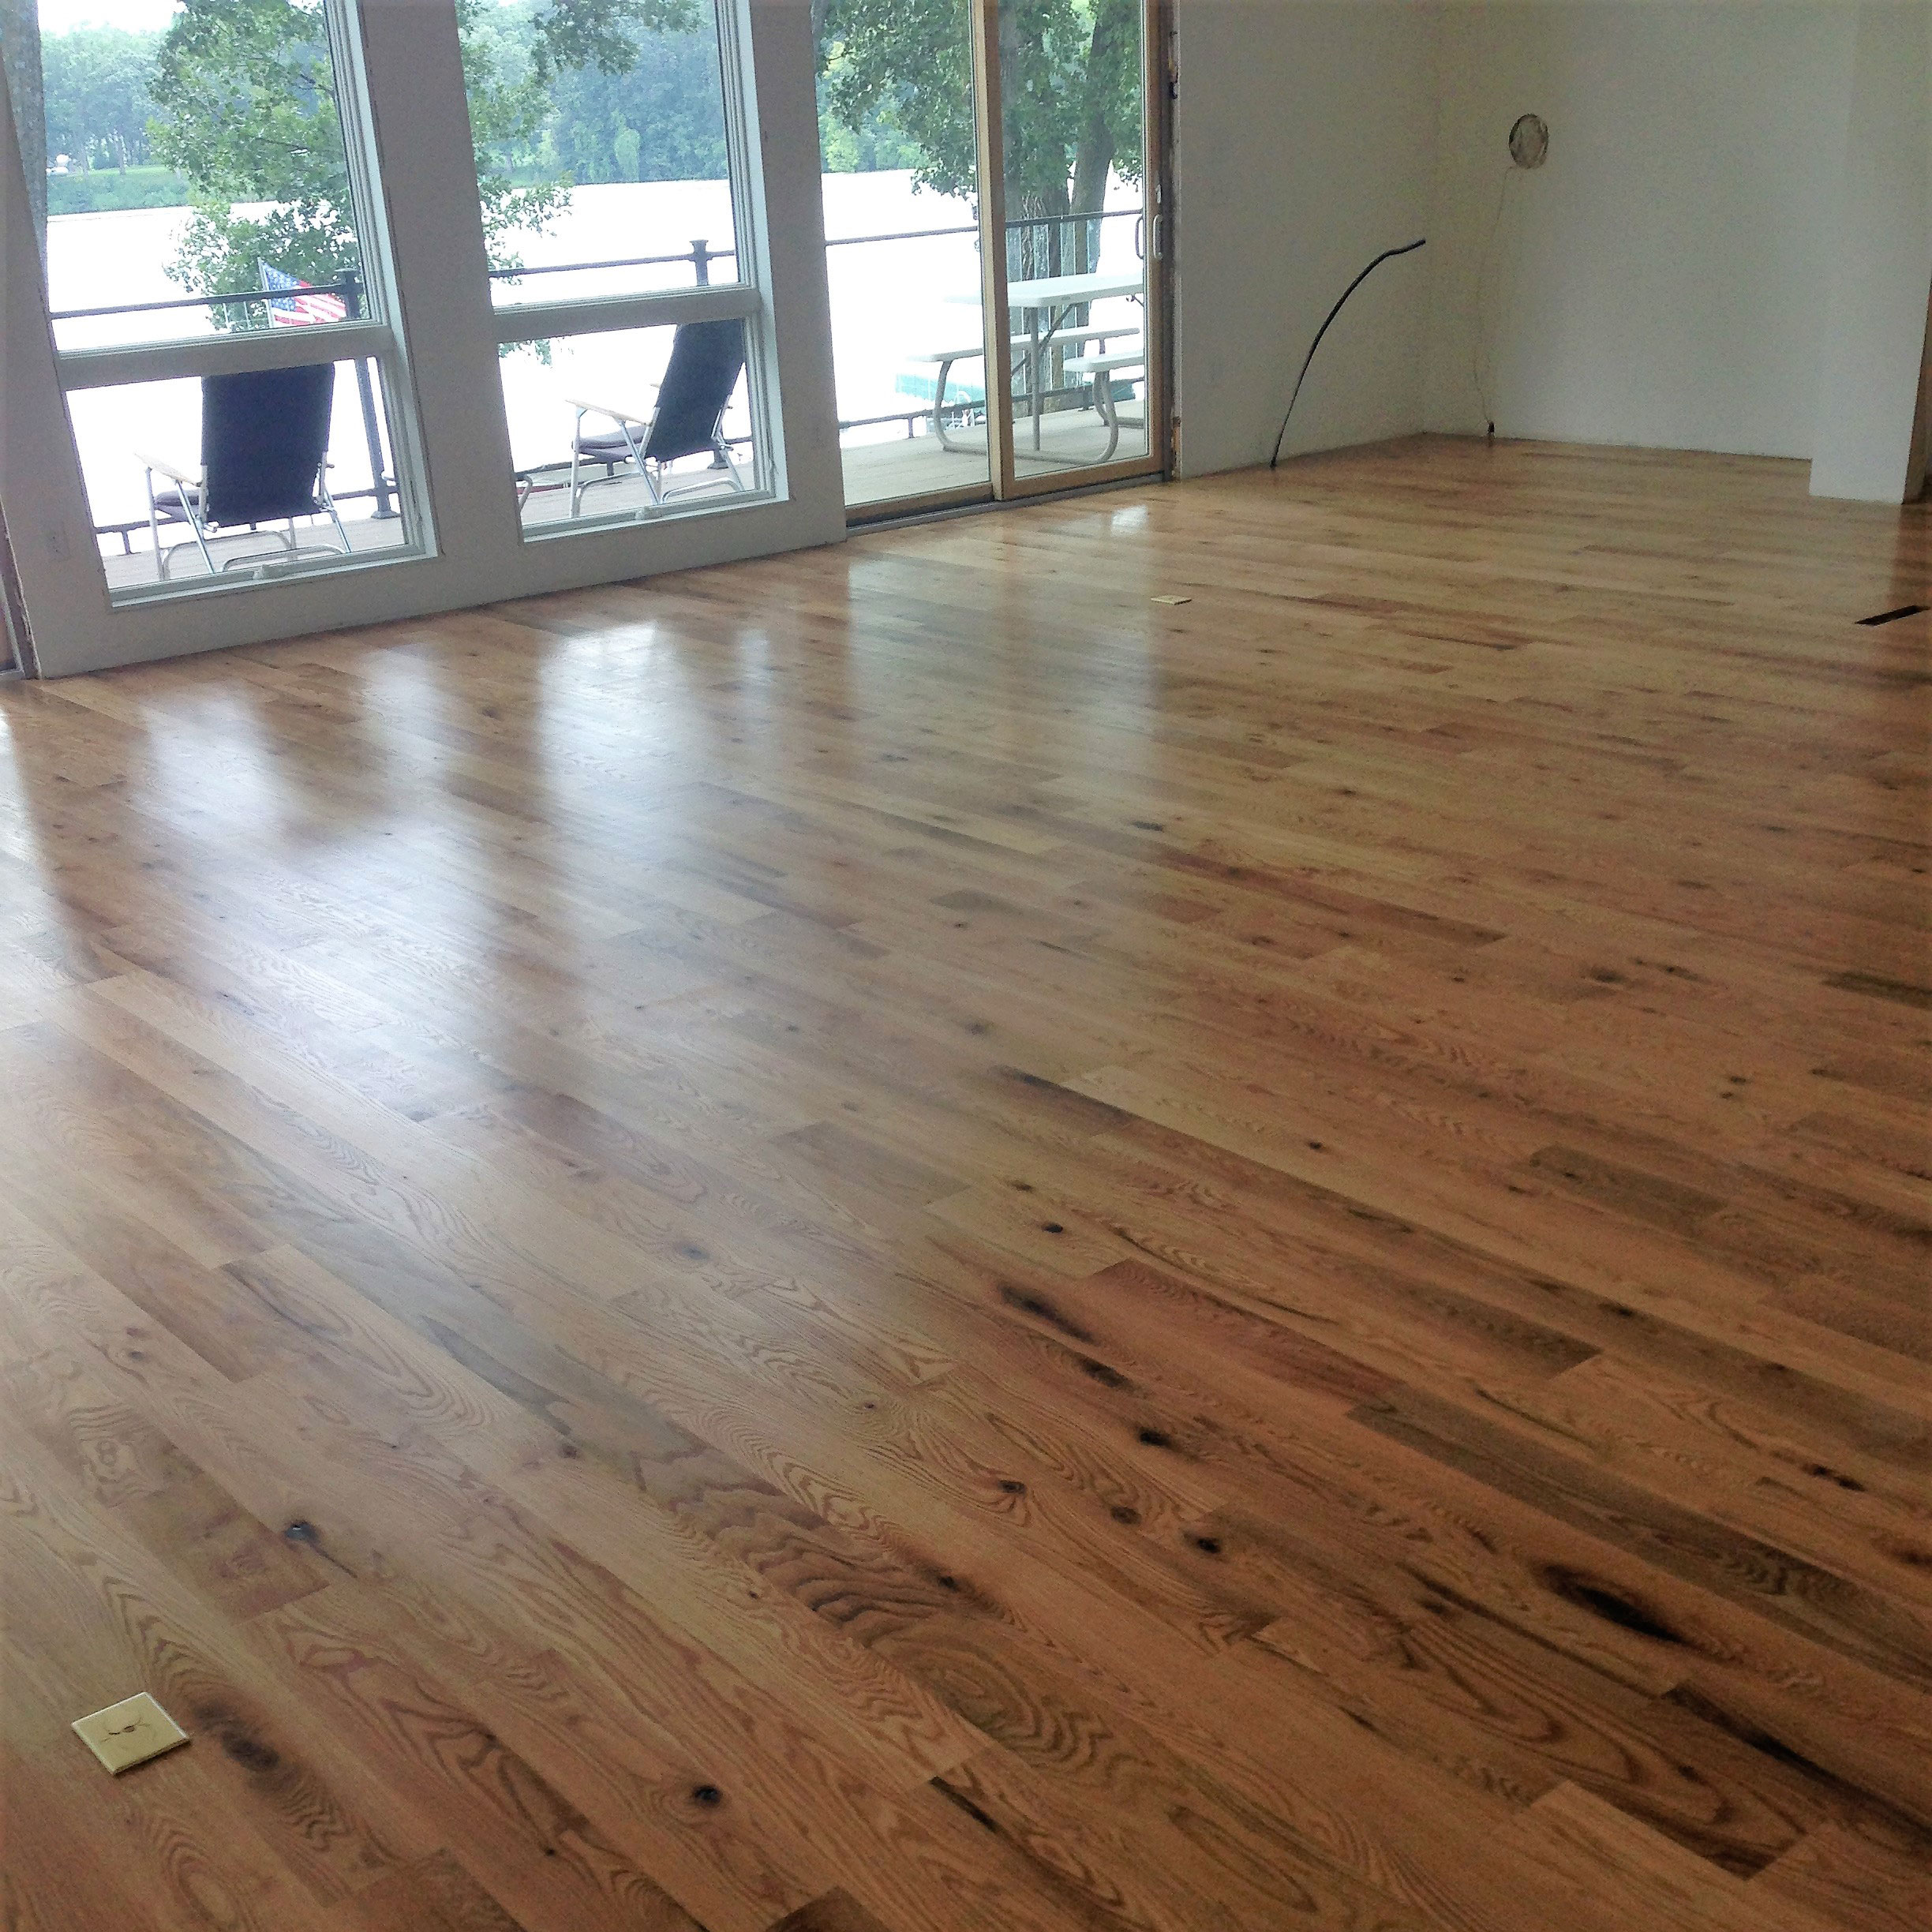 Refinishing hardwood floors sandfree refinishing hardwood for Hardwood floor refinishing